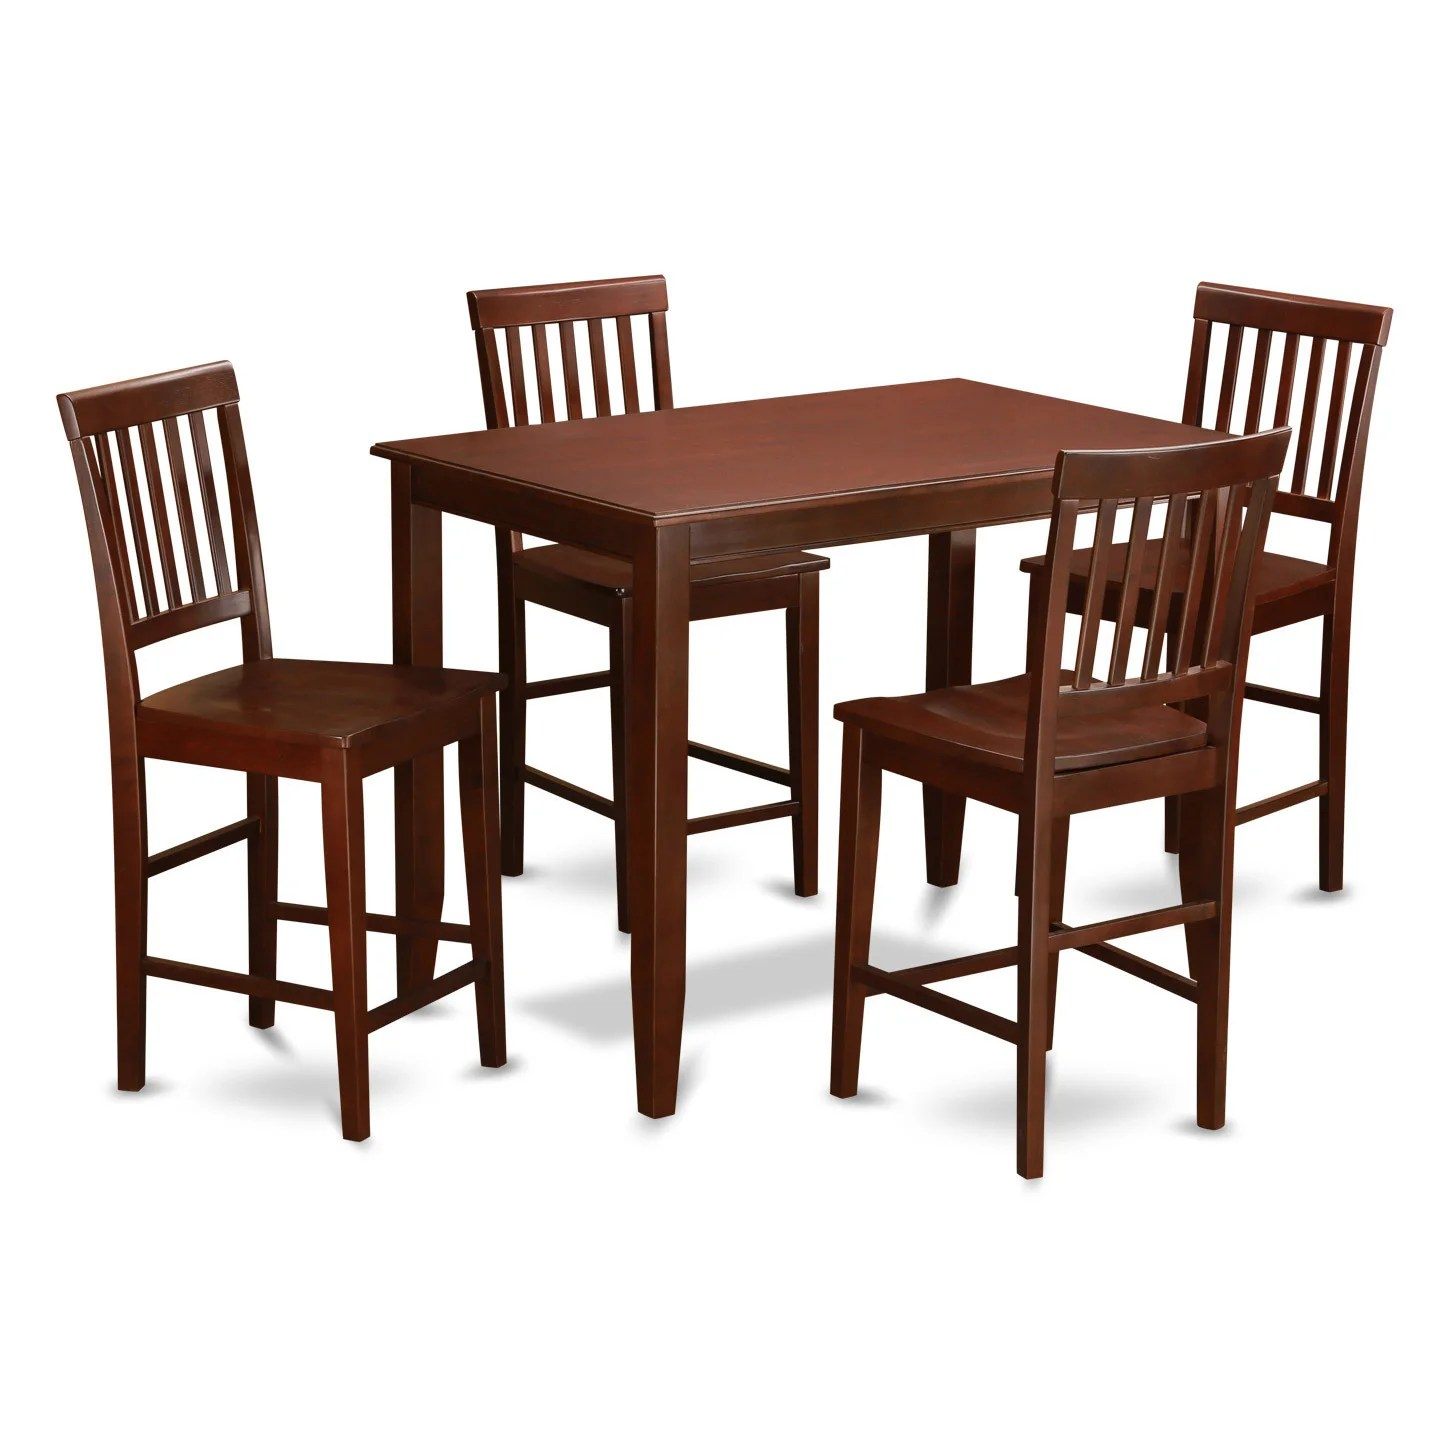 Pub Table With Chairs Mahogany Pub Table And 4 Kitchen Chairs 5 Piece Dining Set